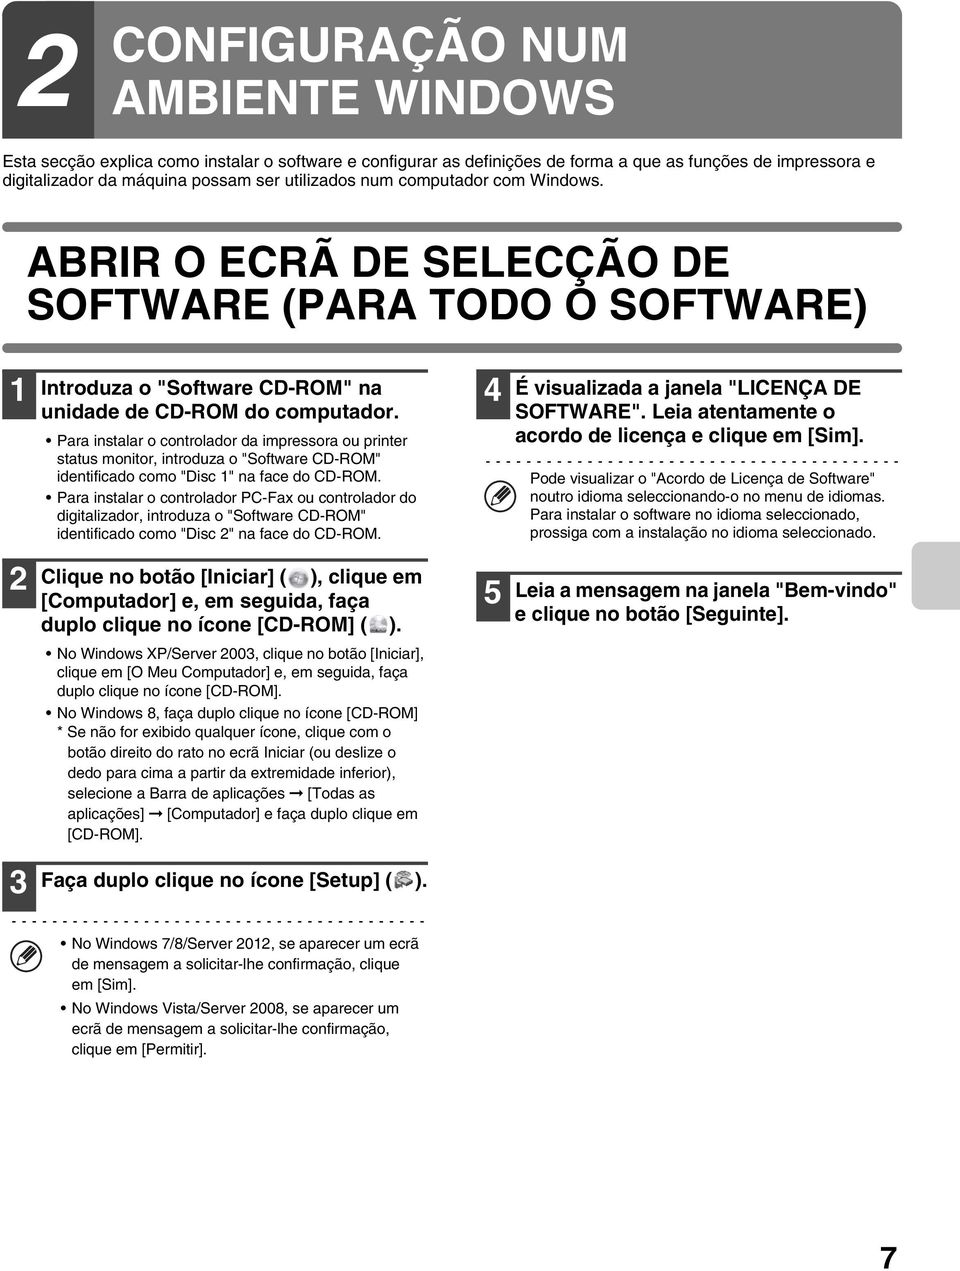 "Para instalar o controlador da impressora ou printer status monitor, introduza o ""Software CD-ROM"" identificado como ""Disc 1"" na face do CD-ROM."